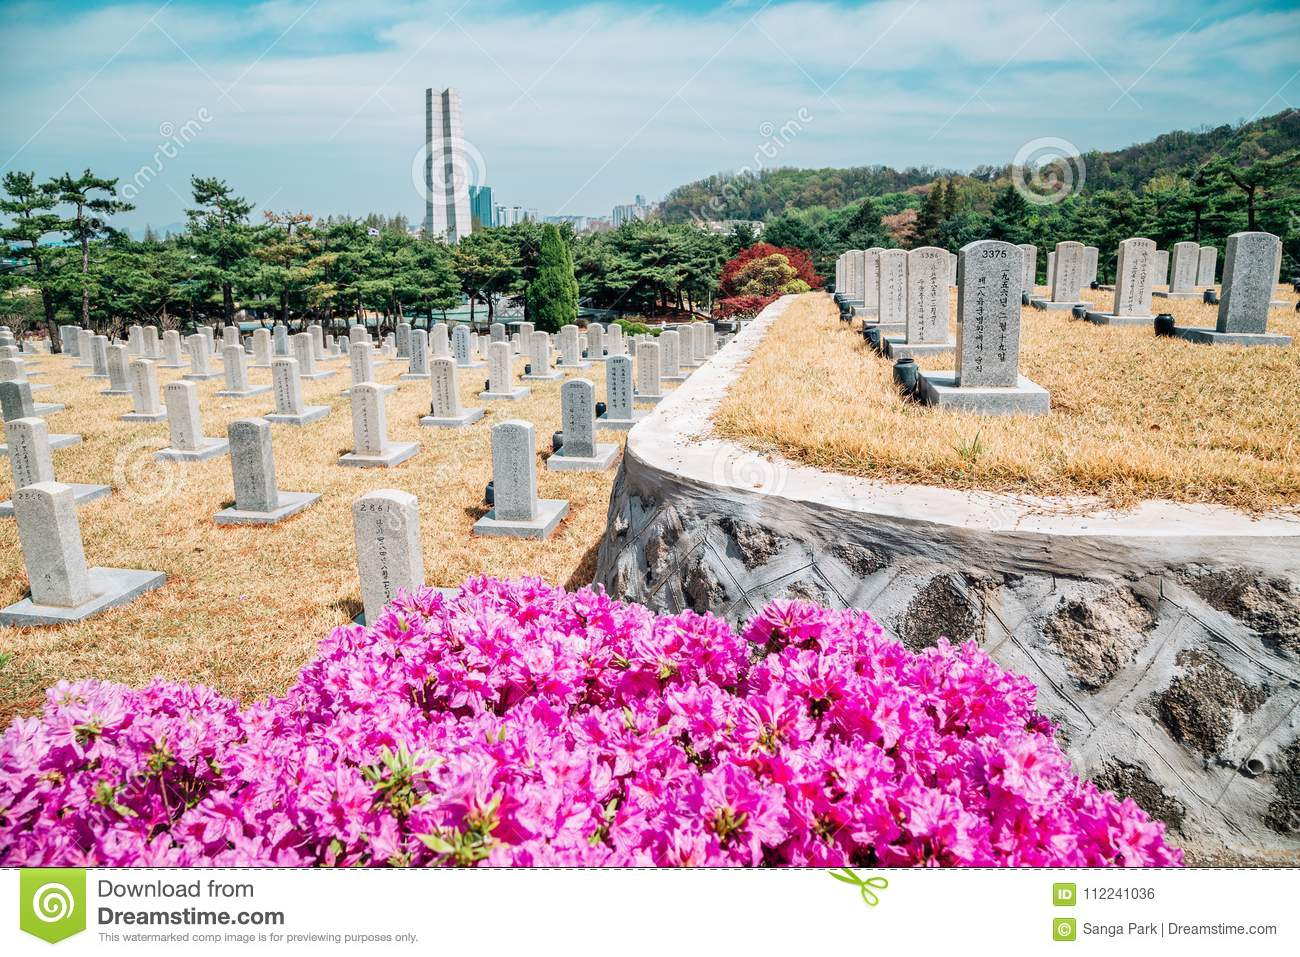 Tombstones at spring in Seoul National Cemetery, Korea